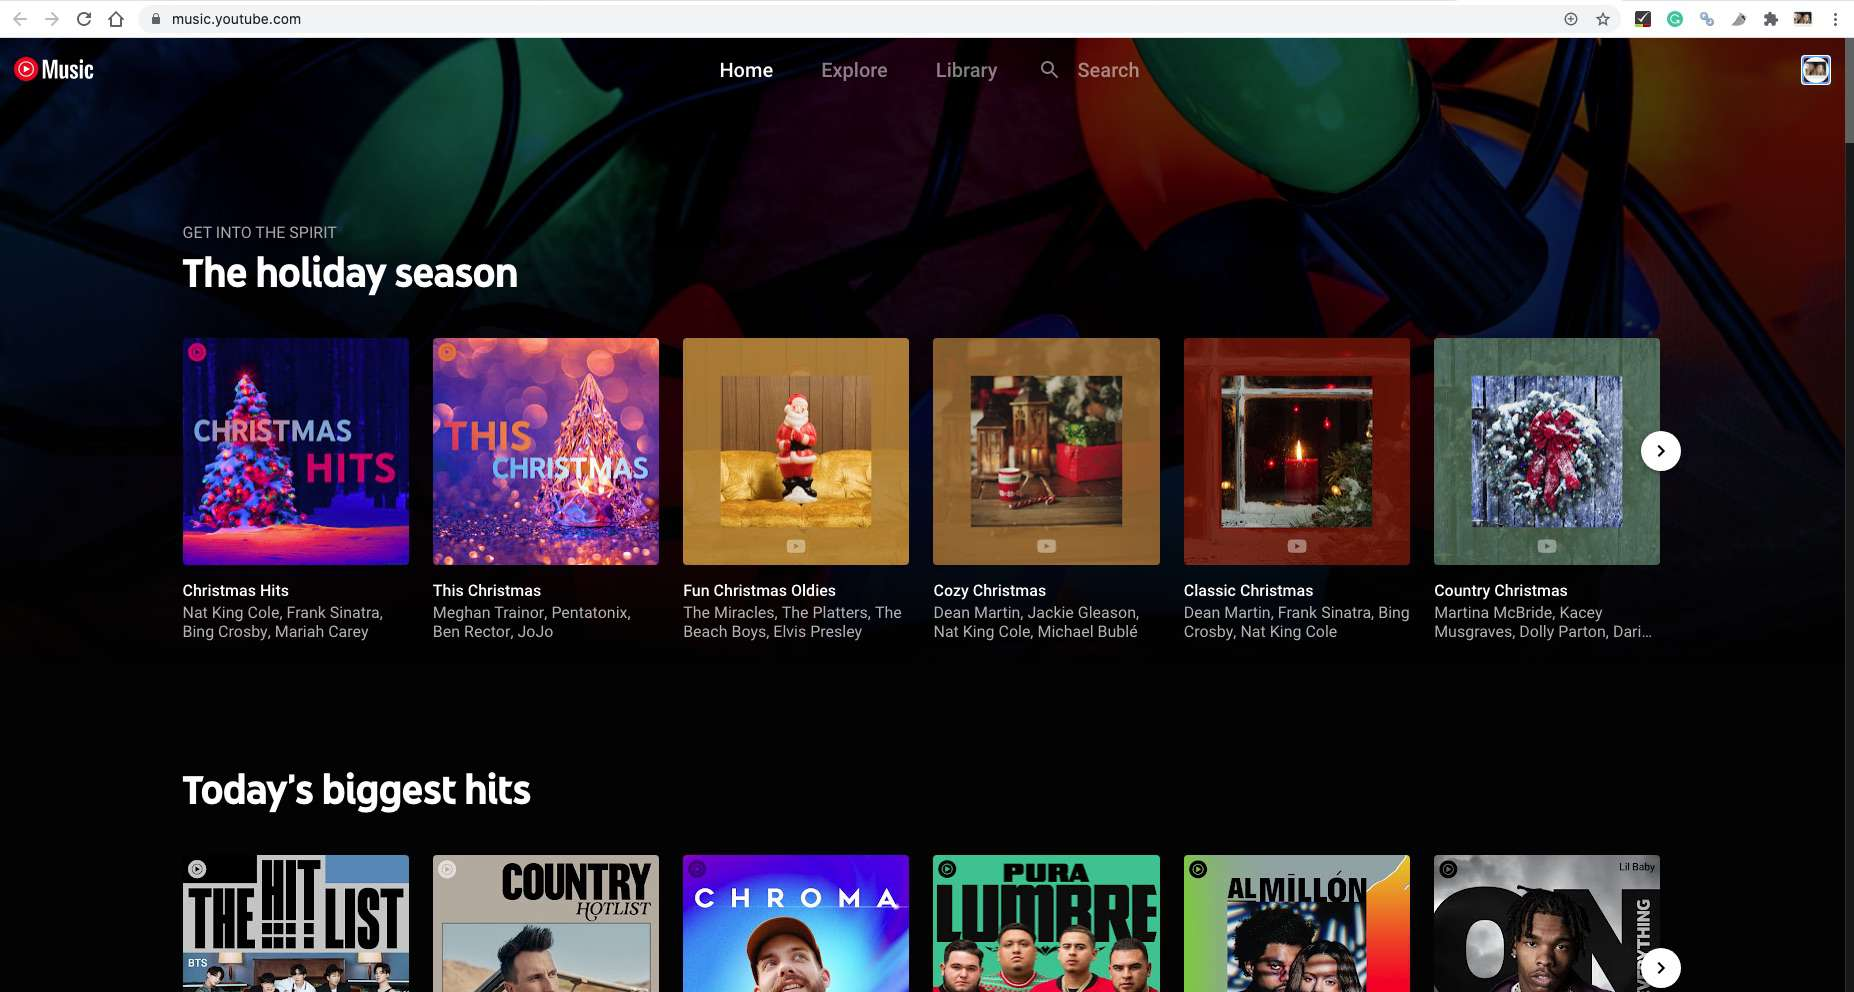 Navigate to YouTube Music on your Chromebook's default Chrome browser.